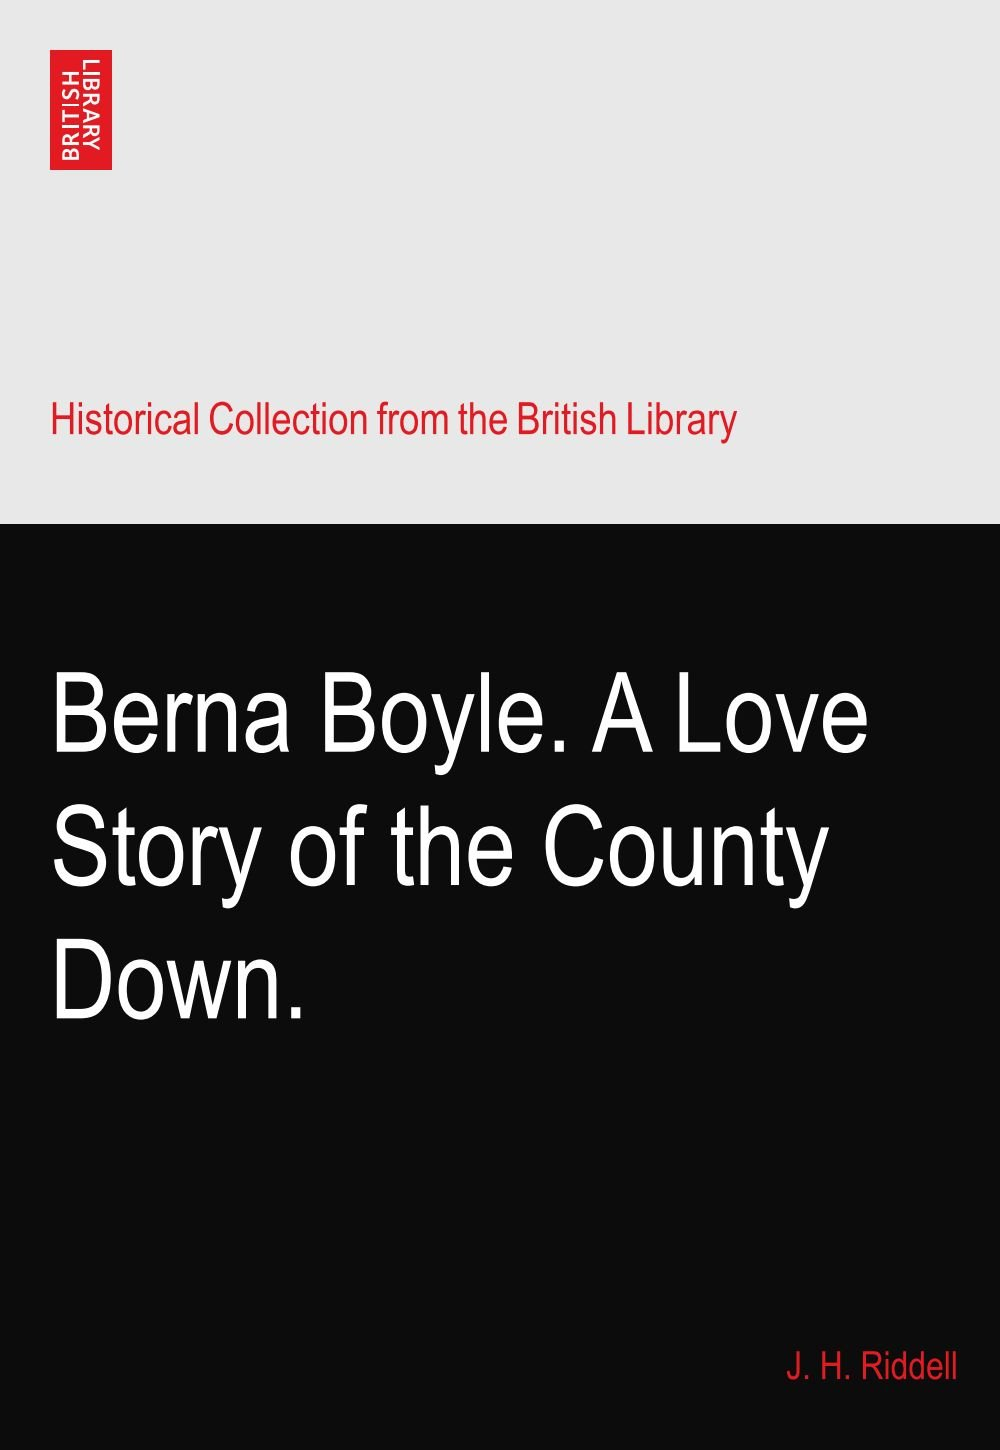 Berna Boyle. A Love Story of the County Down. ebook